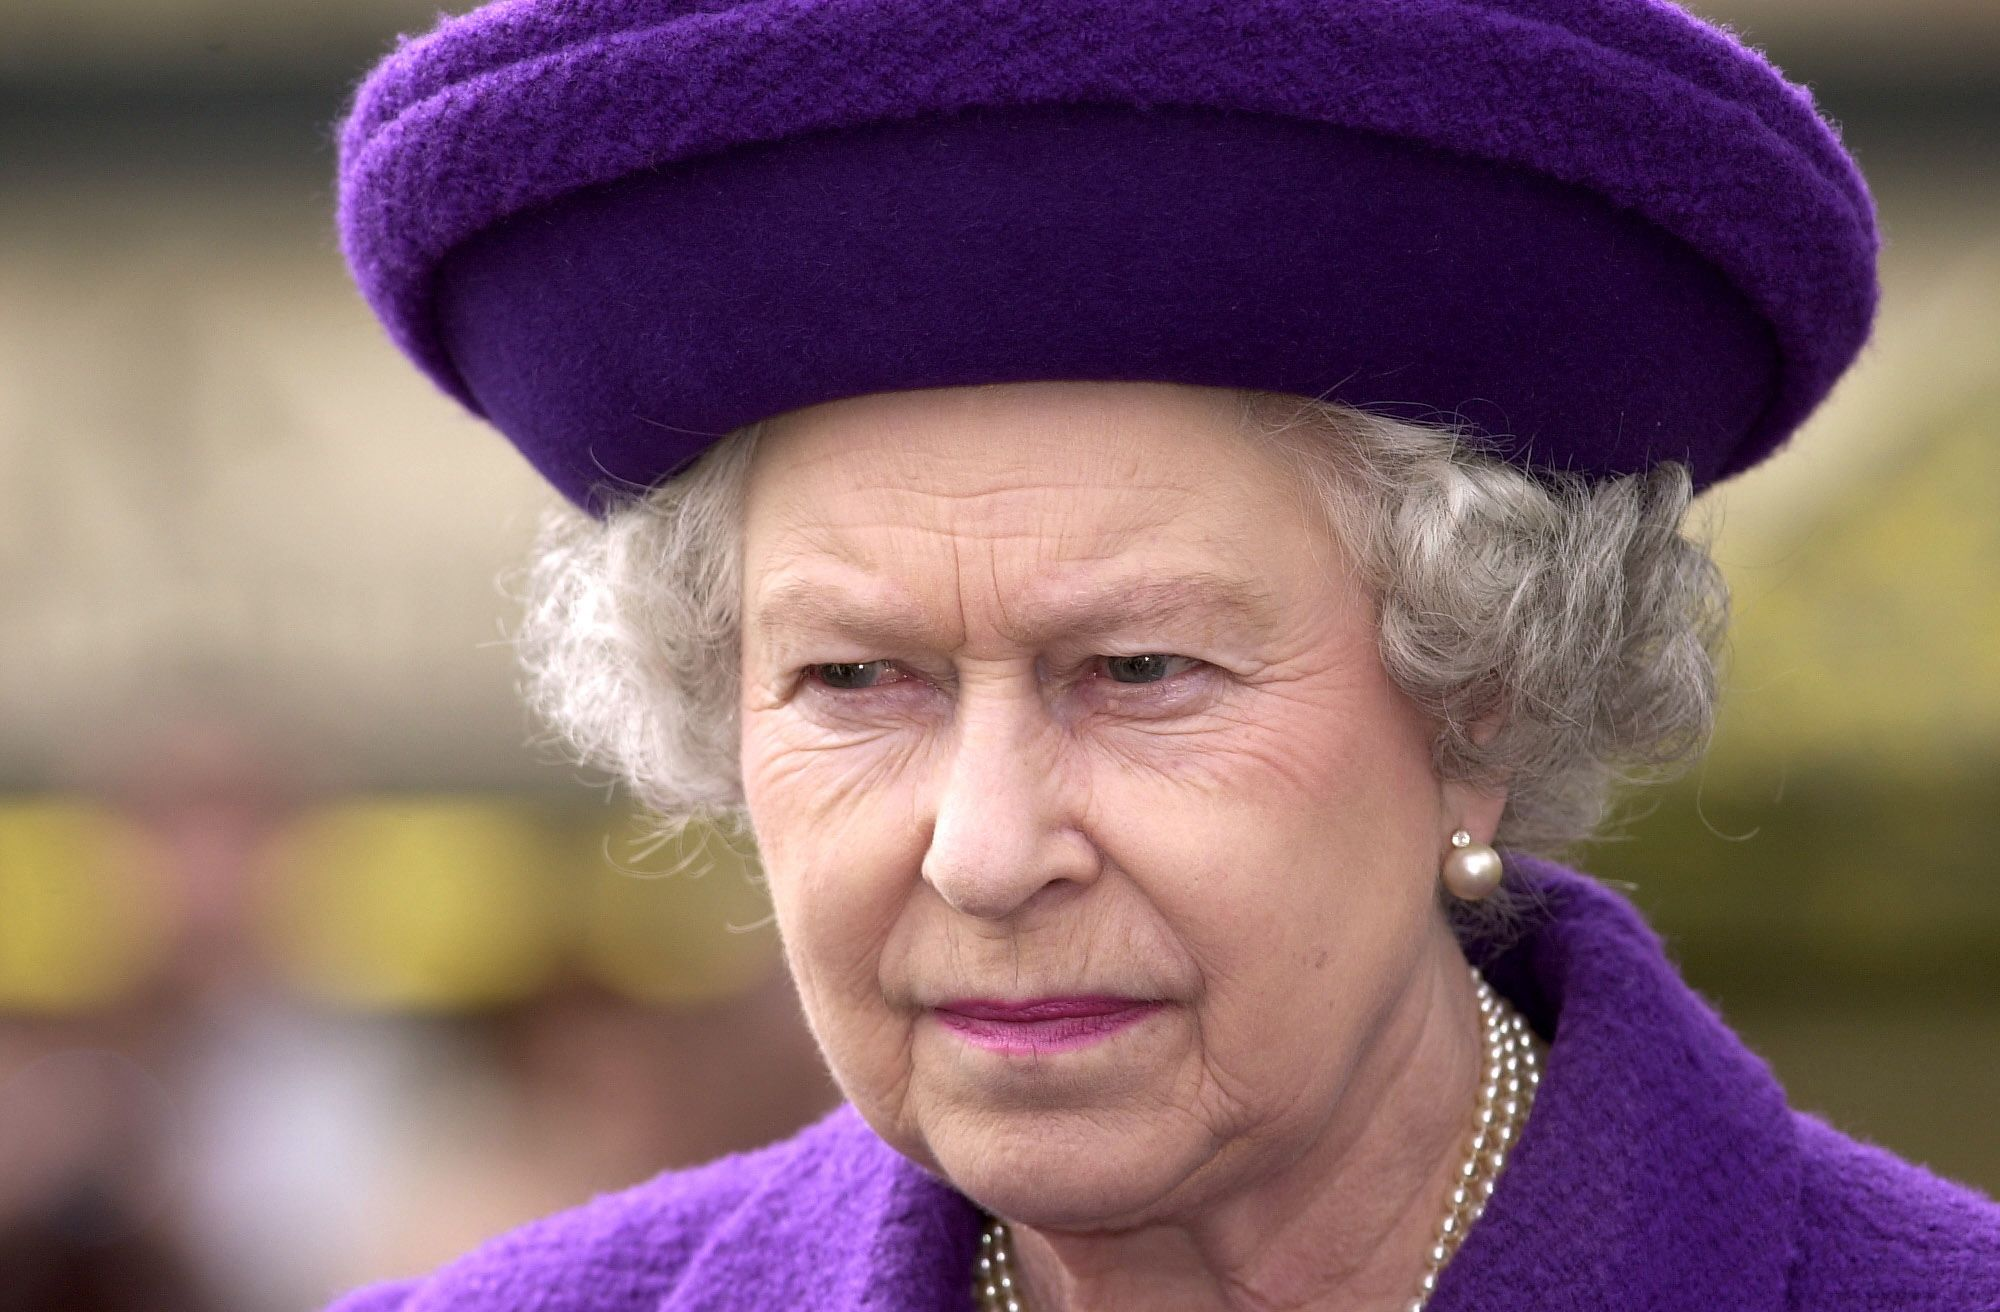 Queen Elizabeth Approved Prince Andrew's Television Interview About His Relationship With Jeffrey Epstein